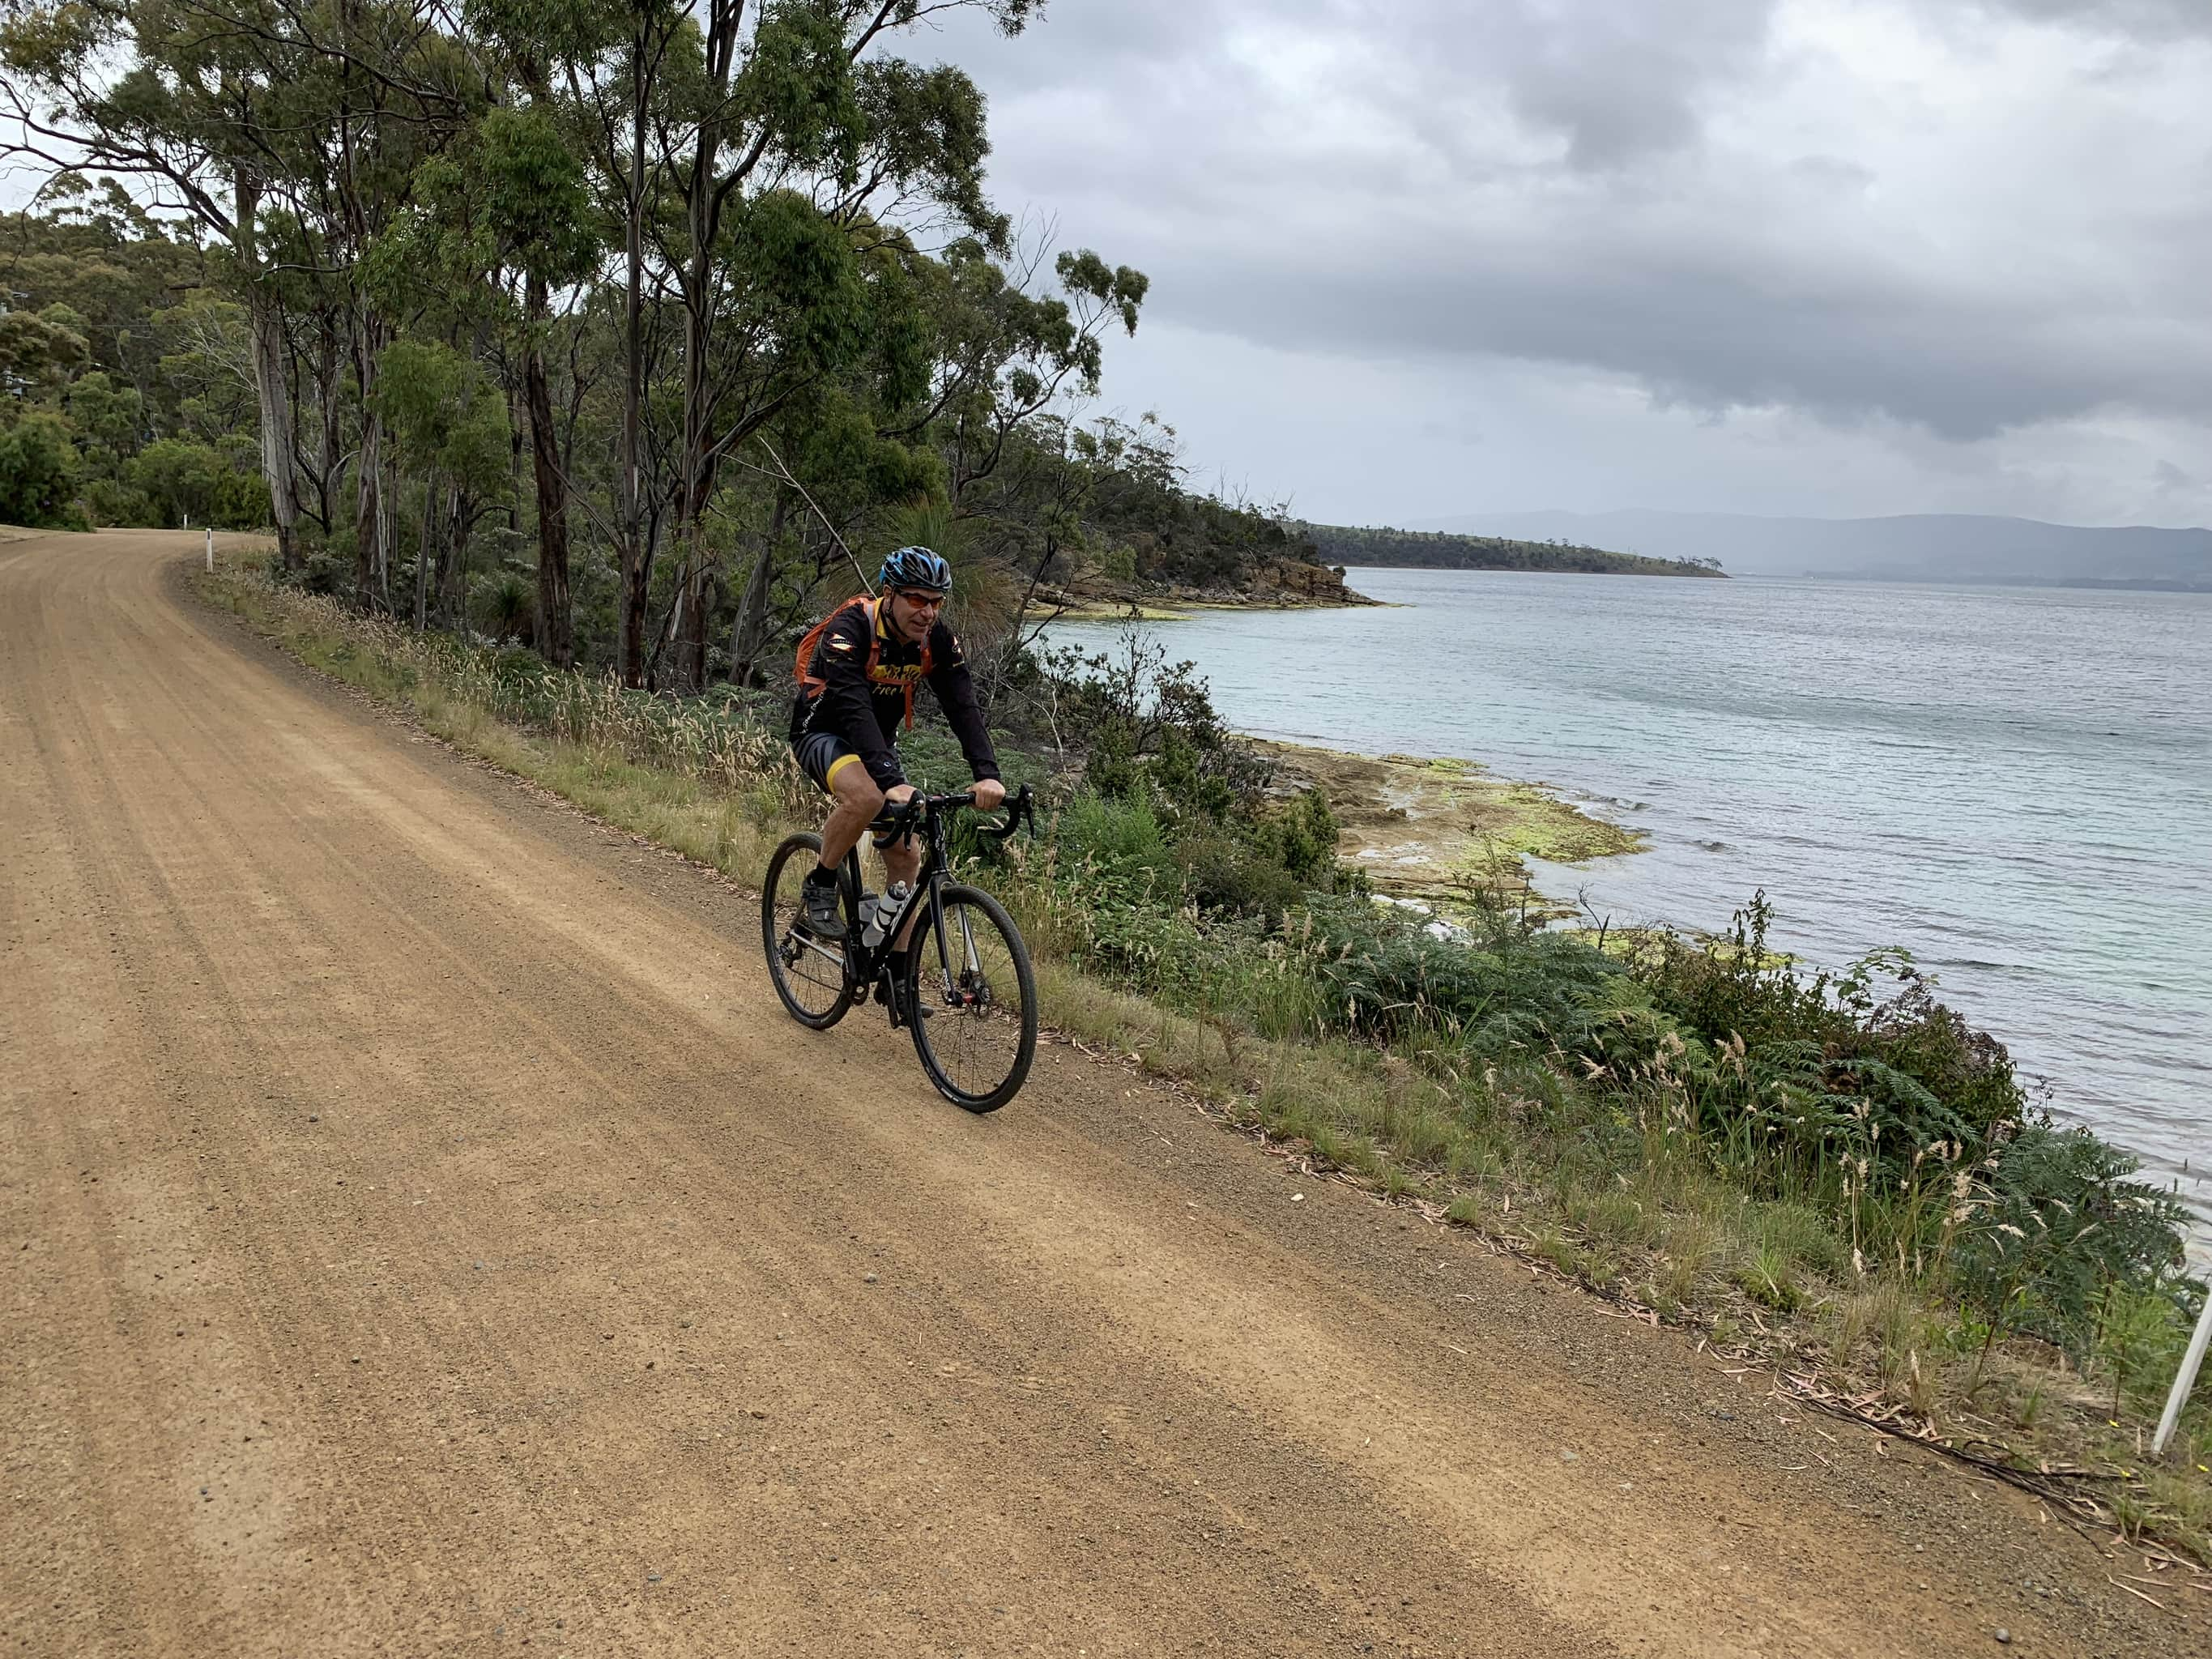 Bike rider on gravel road near Dennes Point on North Bruny Island. Coast line to left.